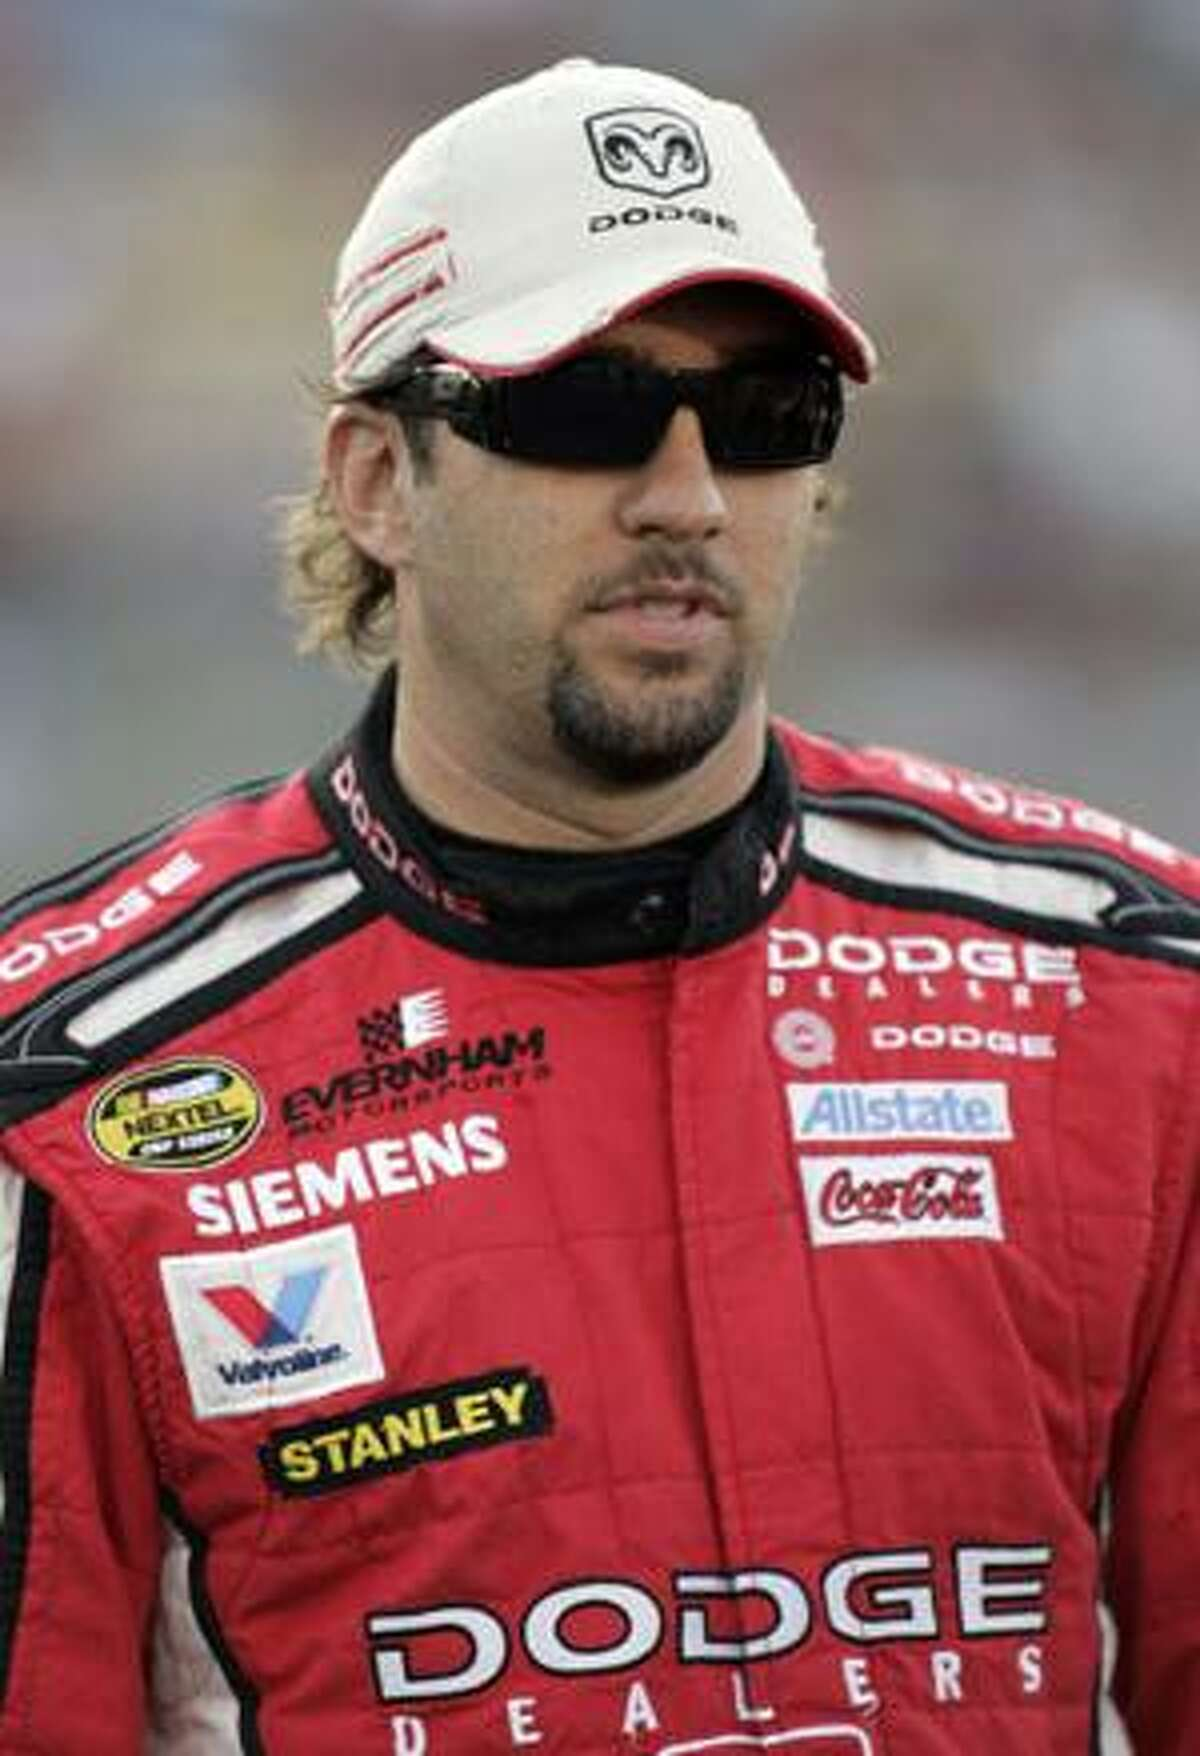 This May 24, 2007 file photo shows Elliott Sadler before qualifying for the NASCAR Nextel Cup series Coca-Cola 600 auto race at Lowe's Motor Speedway in Concord, N.C. The future is uncertain, though, for one of NASCAR's most likable drivers. He's in the midst of his sixth consecutive winless season, and his prospects of landing a solid ride in the Sprint Cup Series are fading with each week. (AP Photo/Terry Renna,File)